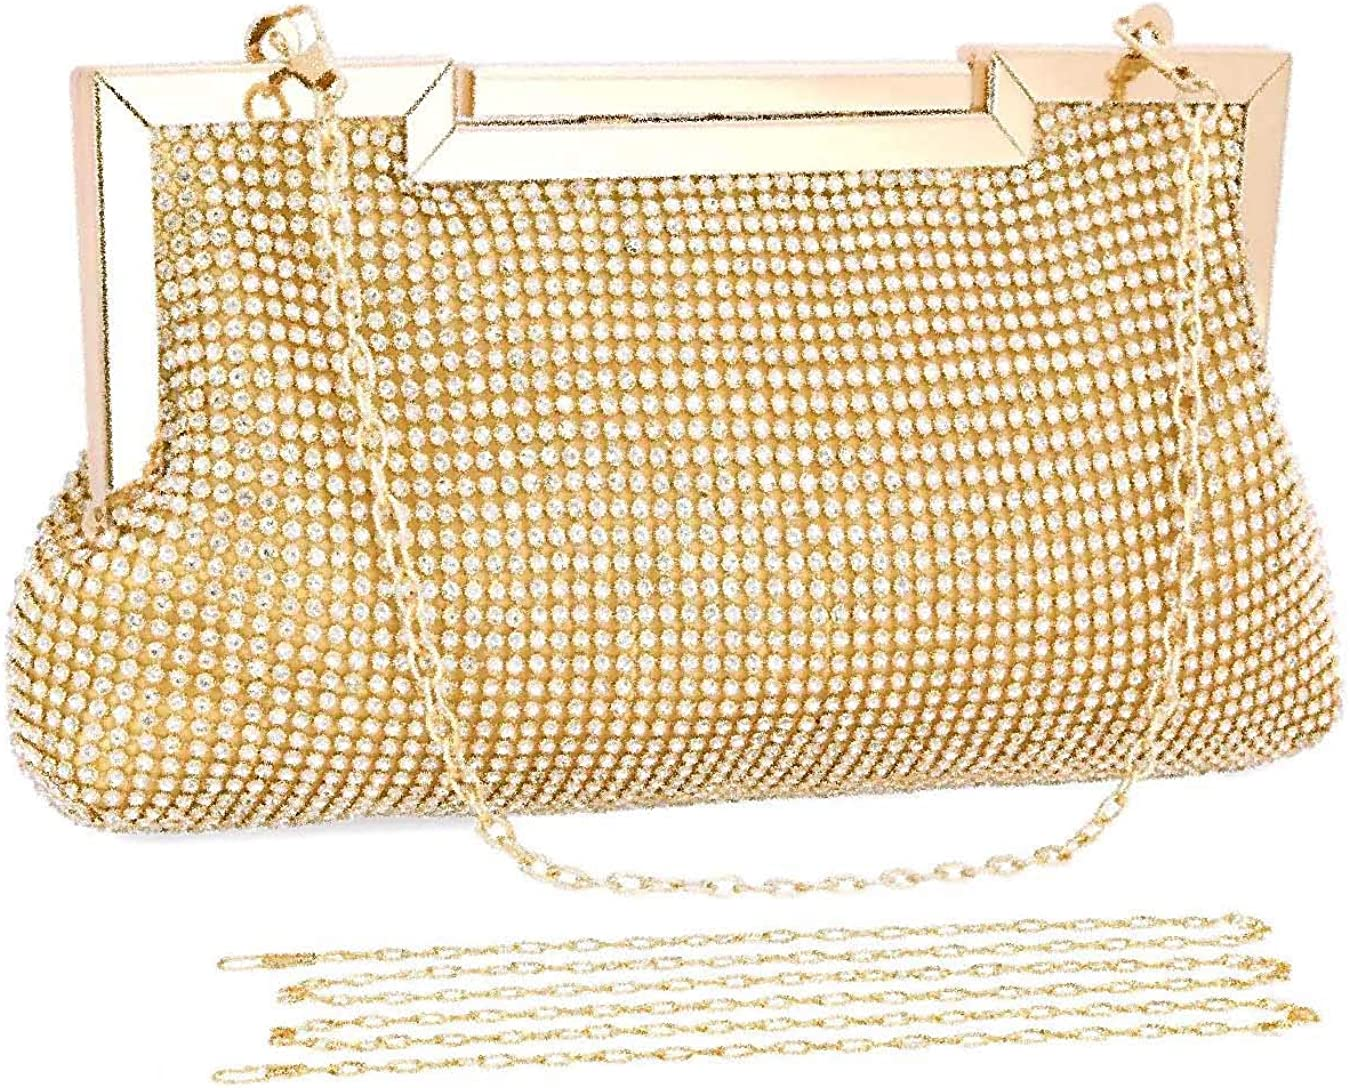 Rock on Styles Patent Sparkly Bridal Evening Party Prom Handbag Clutch Bag-6672